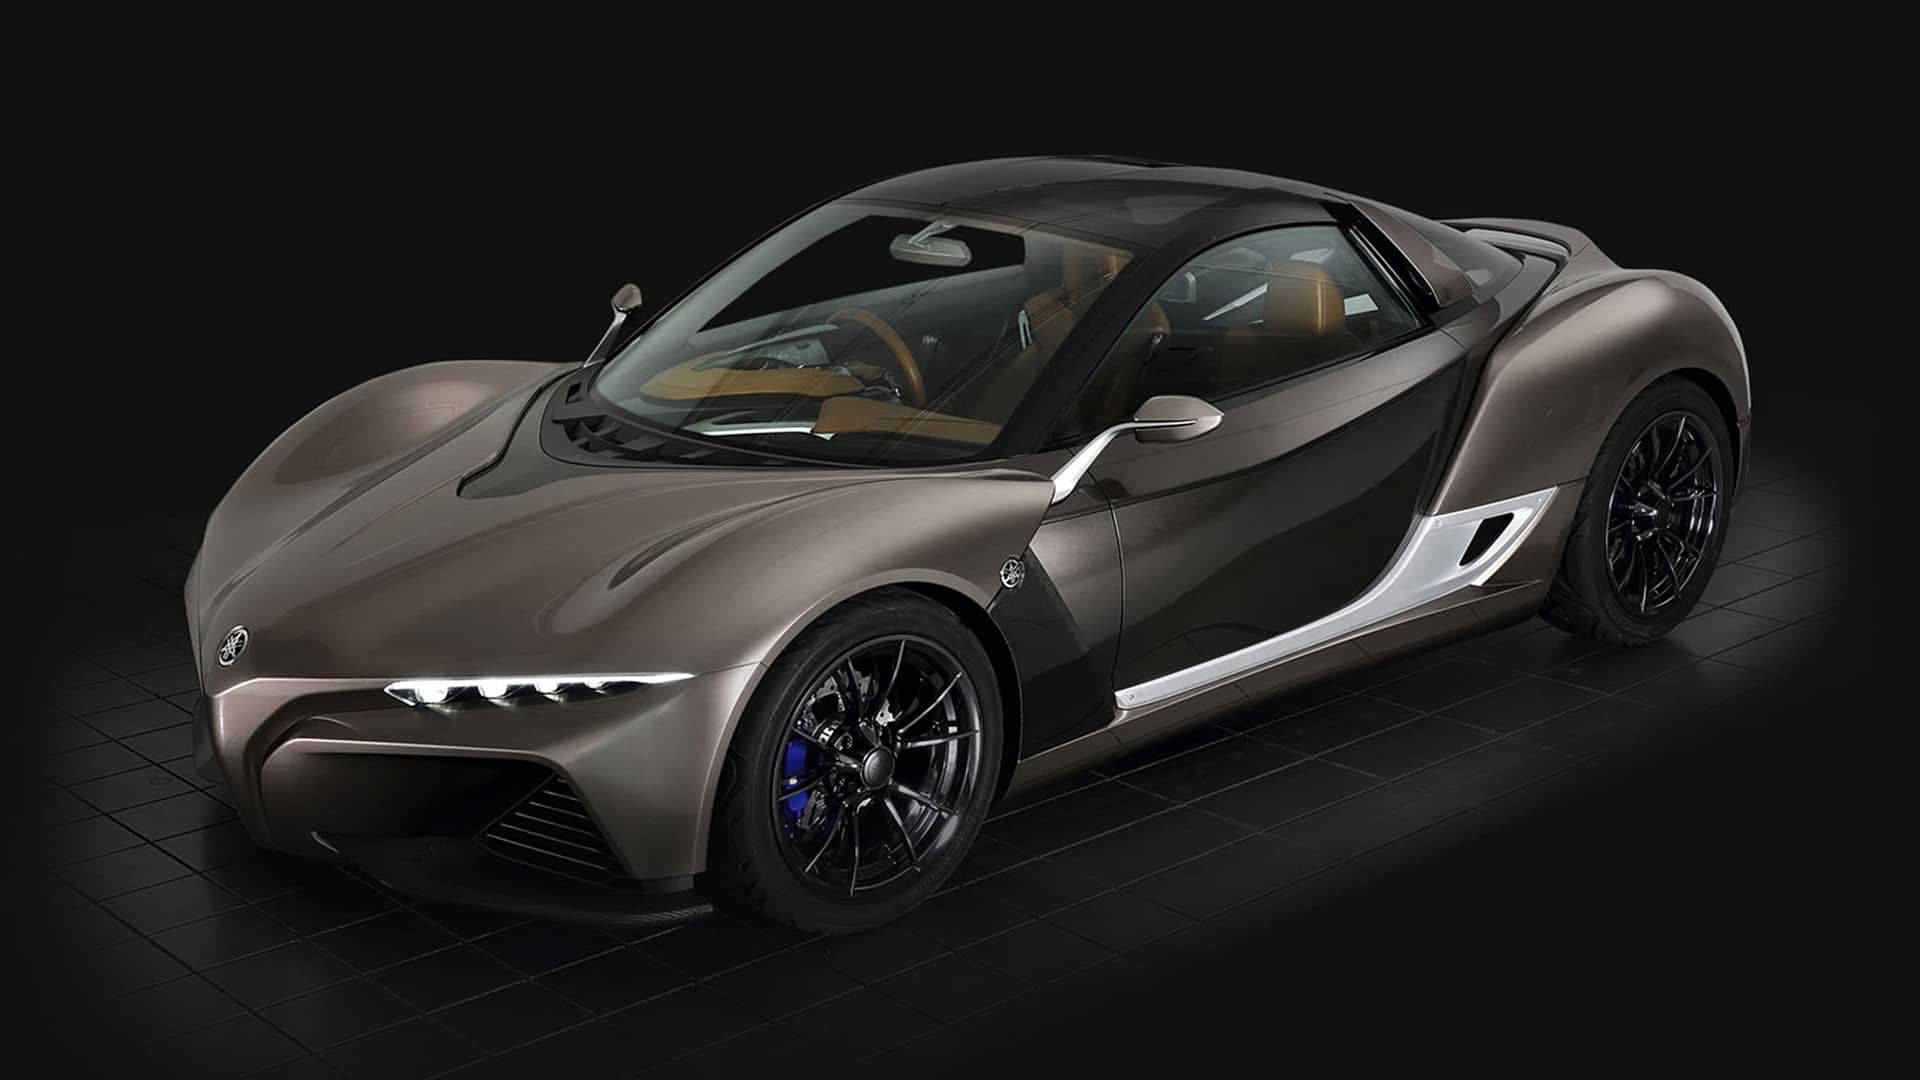 Yamaha Sports Ride Concept car